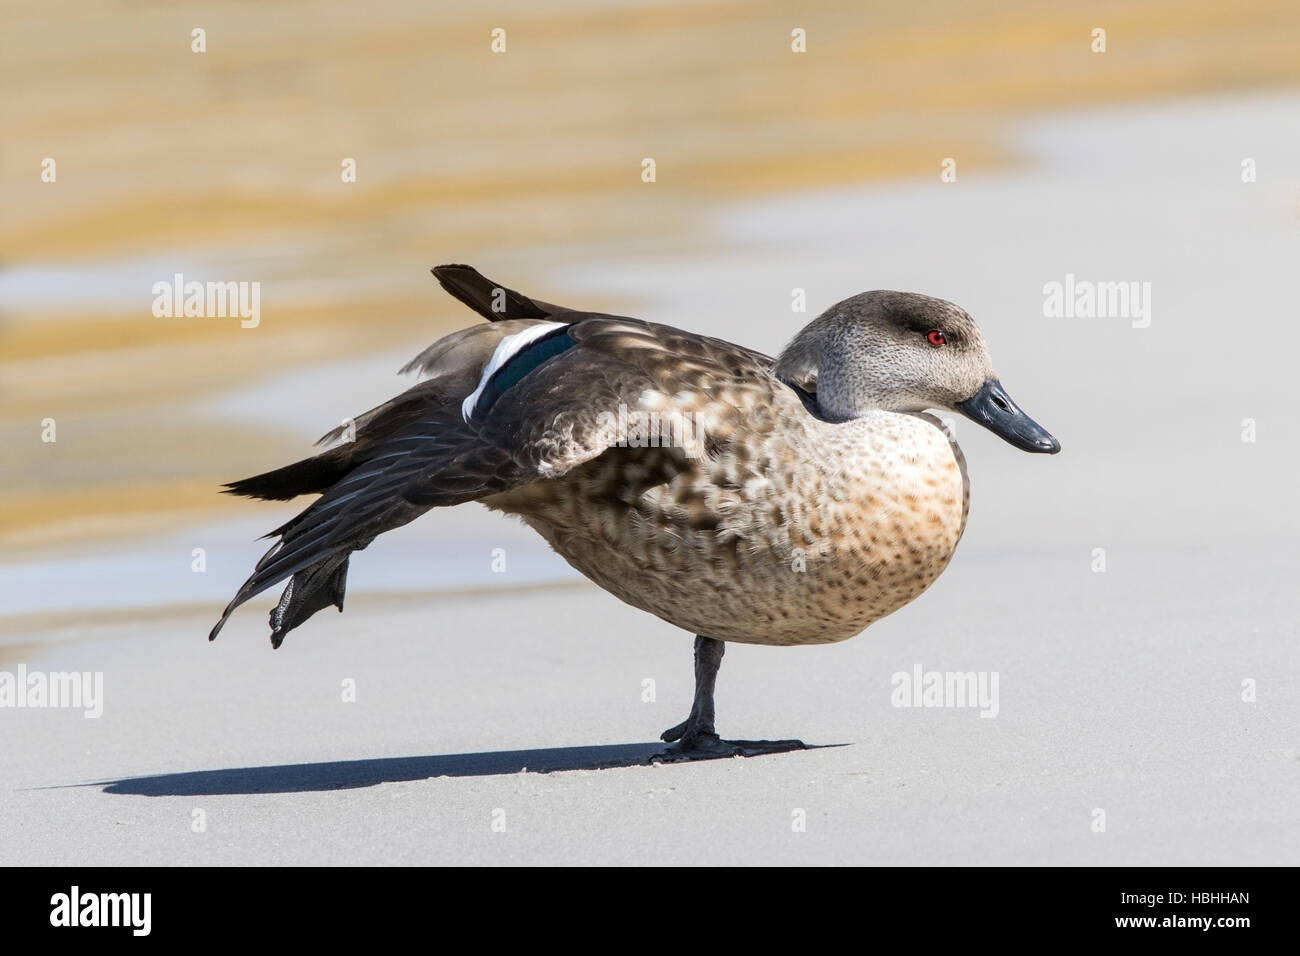 crested duck (Lophonetta specularioides) adult stretching wing on beach, Falkland Islands - Stock Image